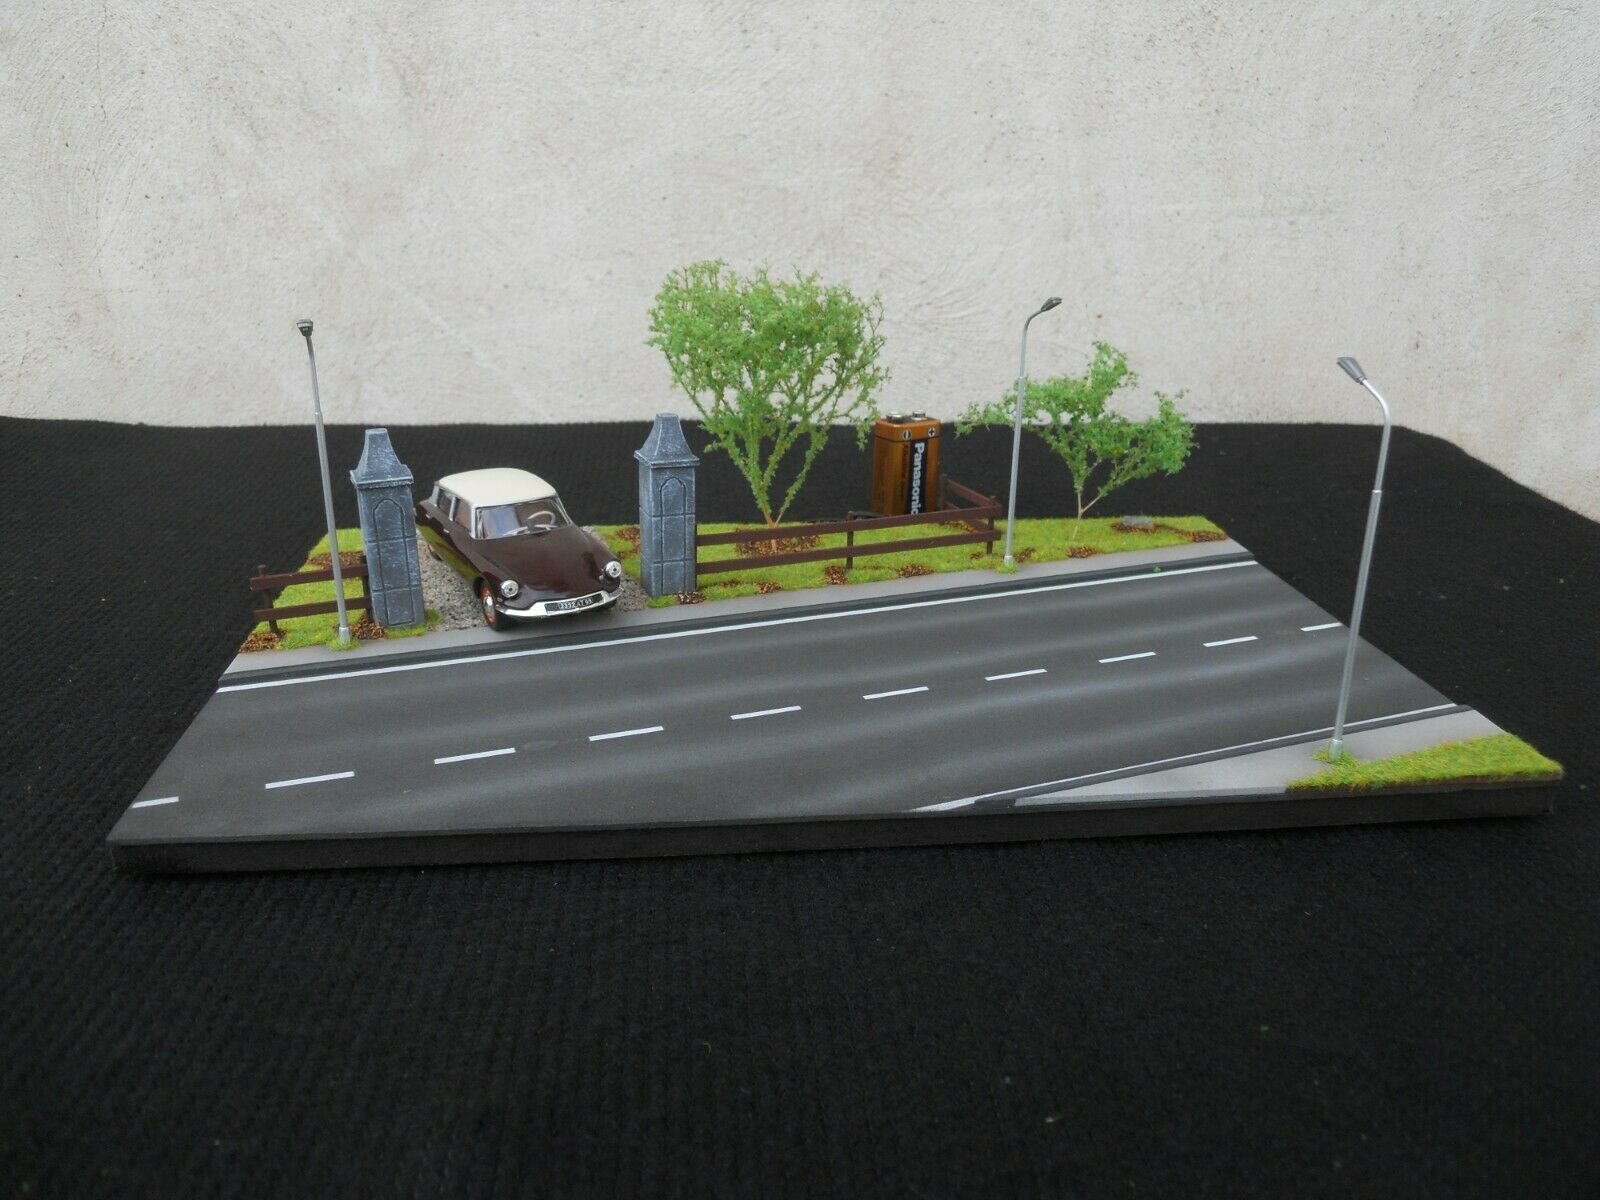 DIORAMA VEHICLES 1 43 INPUT PROPERTY WITH LIGHTING DIMENSIONS 34 cm X 22 cm